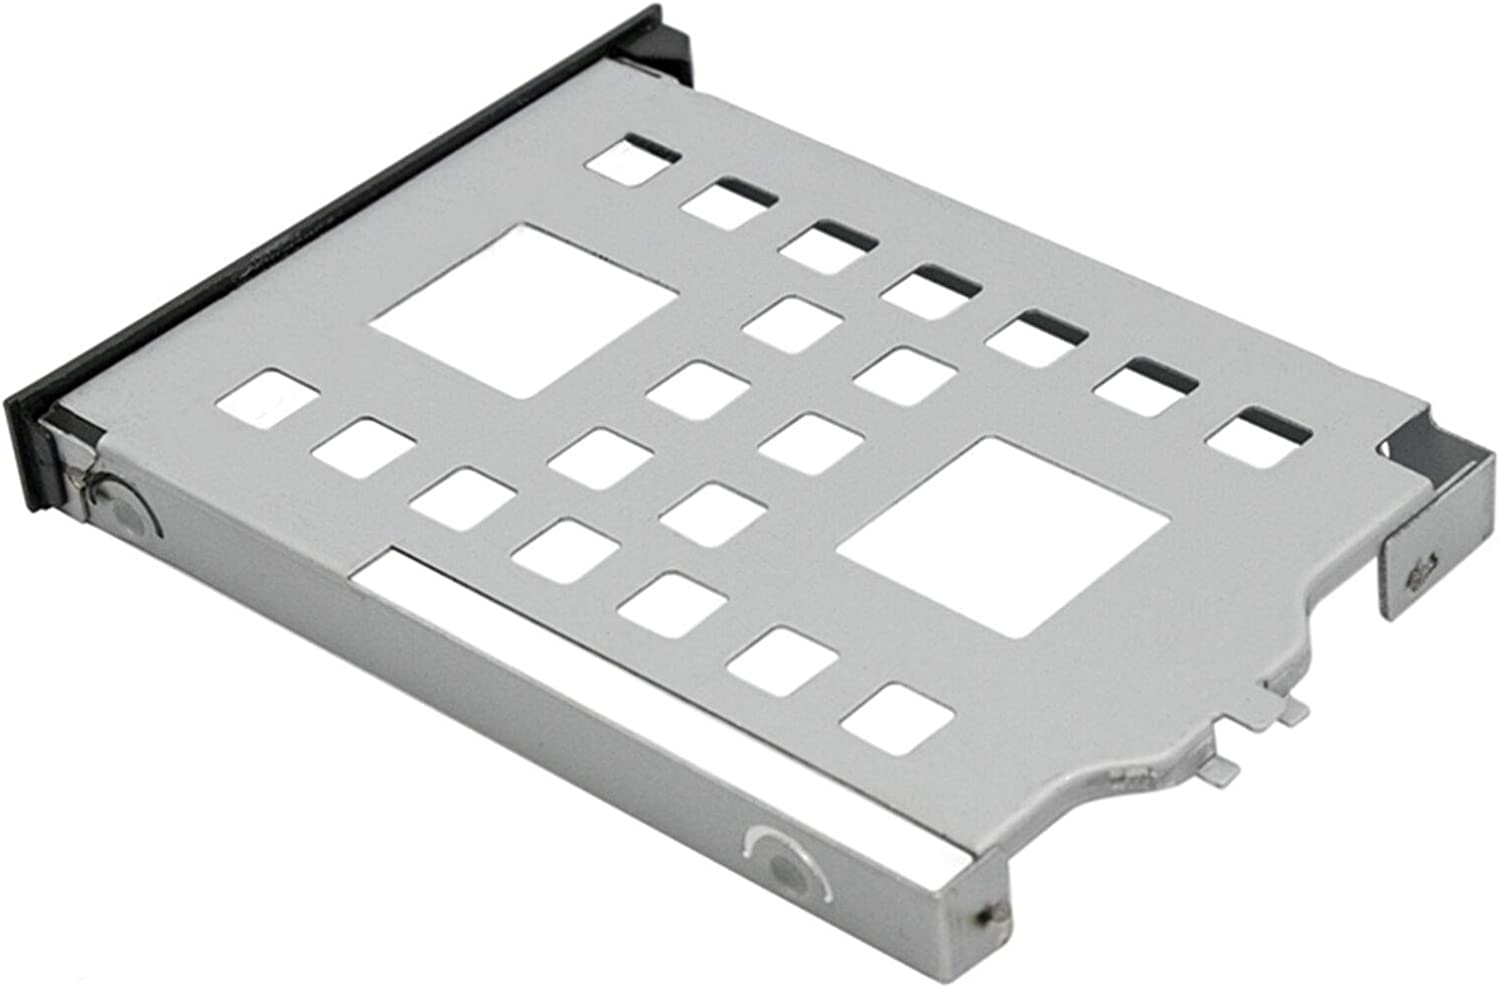 BestParts Hard Drive Caddy for Dell PR M4600 M4700 M4800 M6600 M6700 M6800 794WN 0794WN